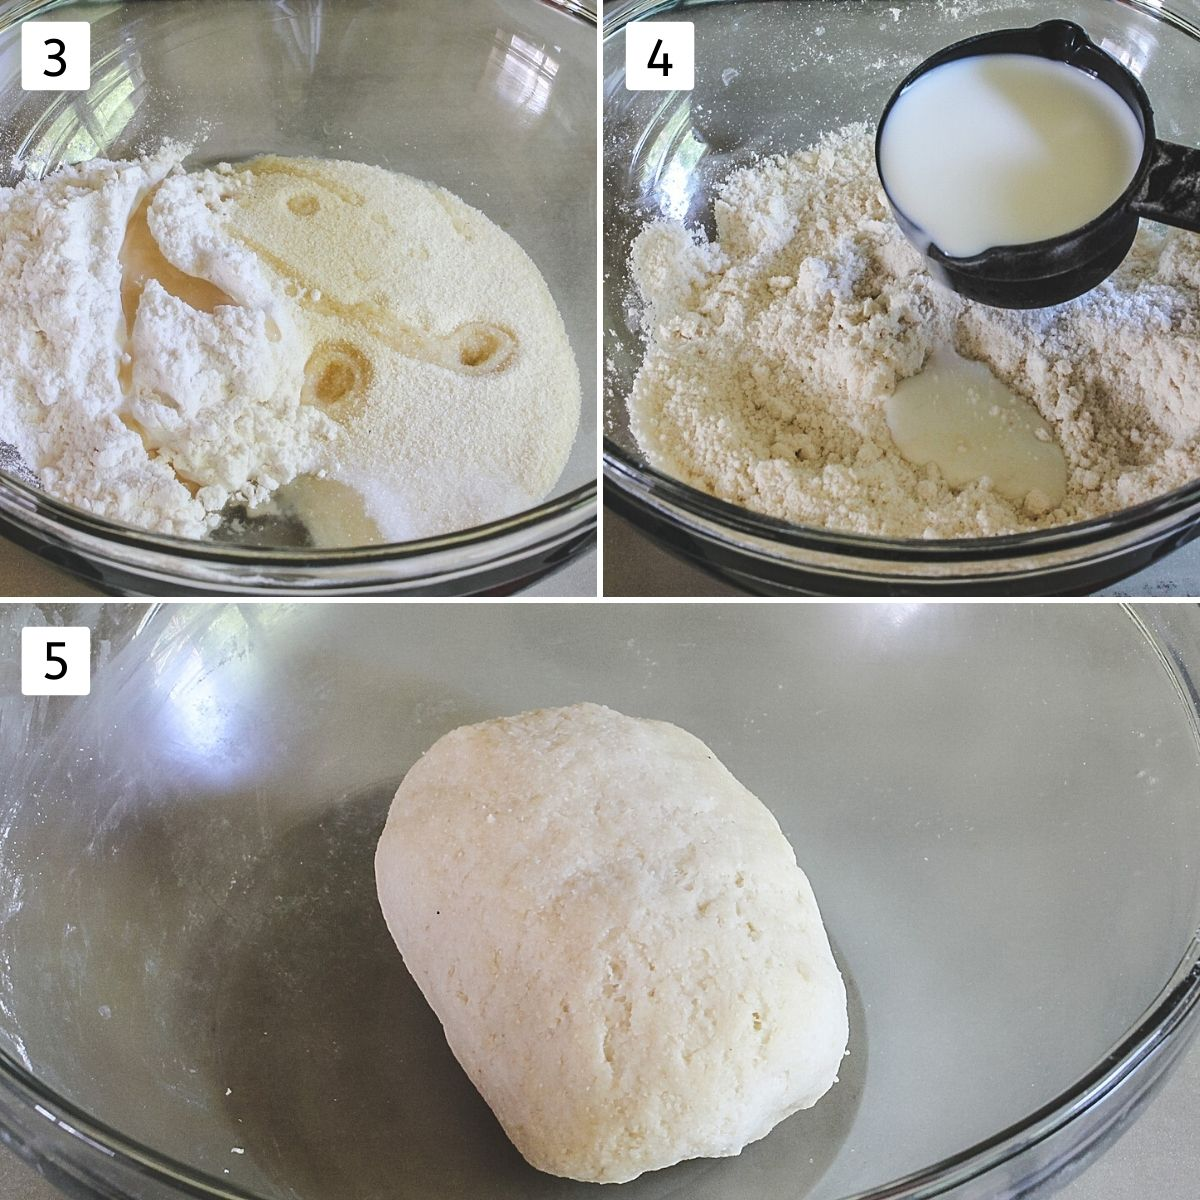 collage of 3 images making dough shows flour, salt, oil in a bowl, mixing, adding milk and kneading the dough.